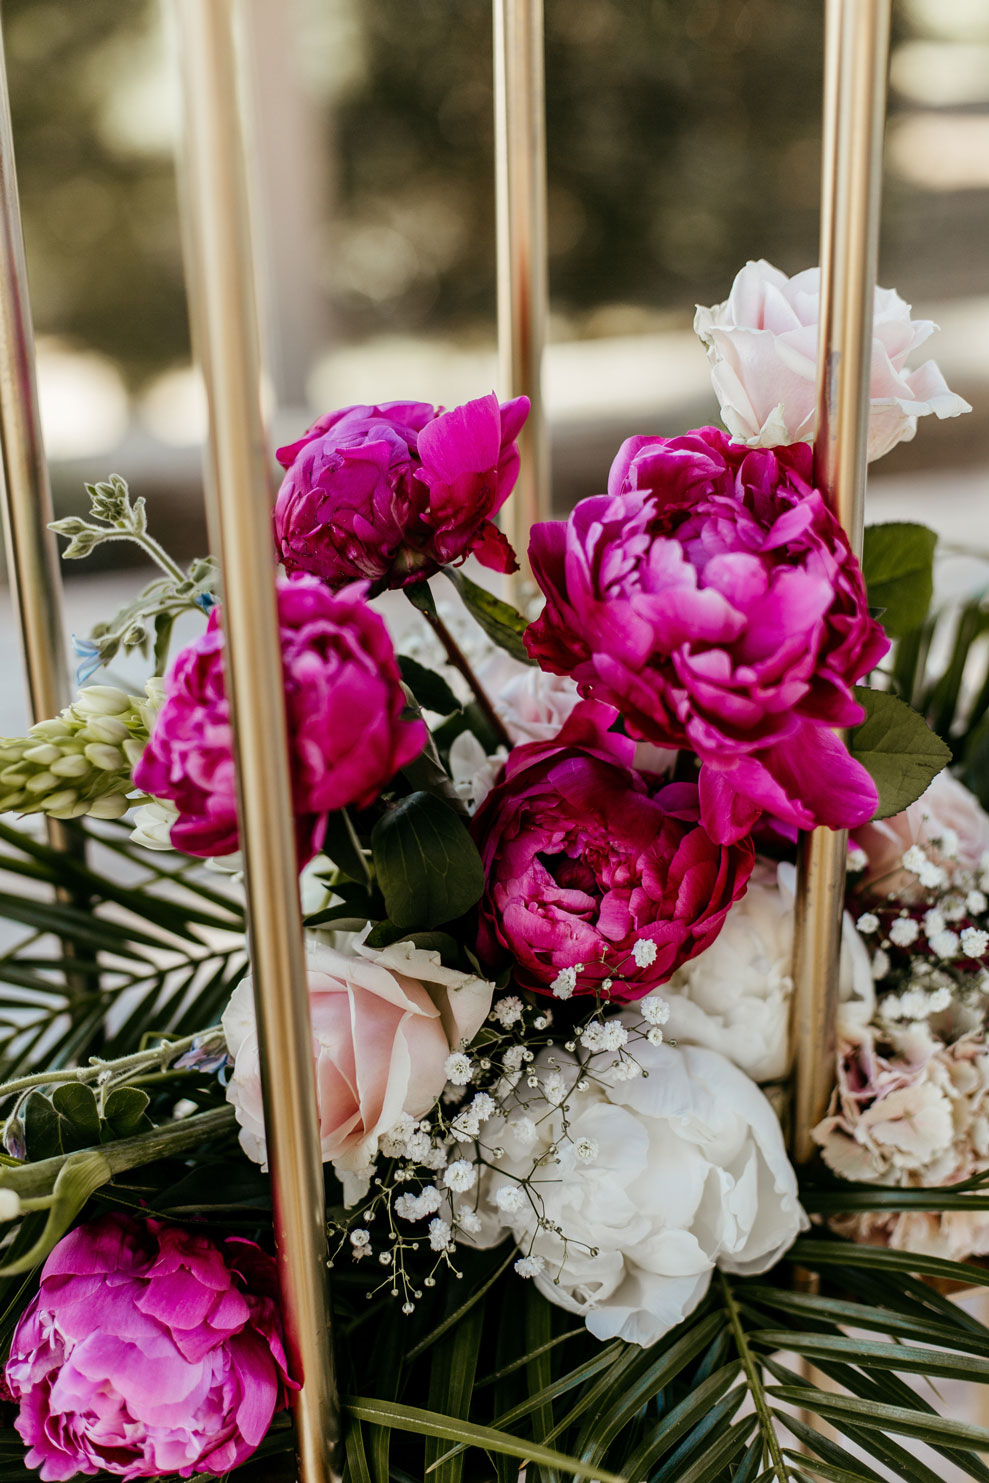 Mariage-Domaine-de-Canaille-Wedding-Planner-Cassis- 37